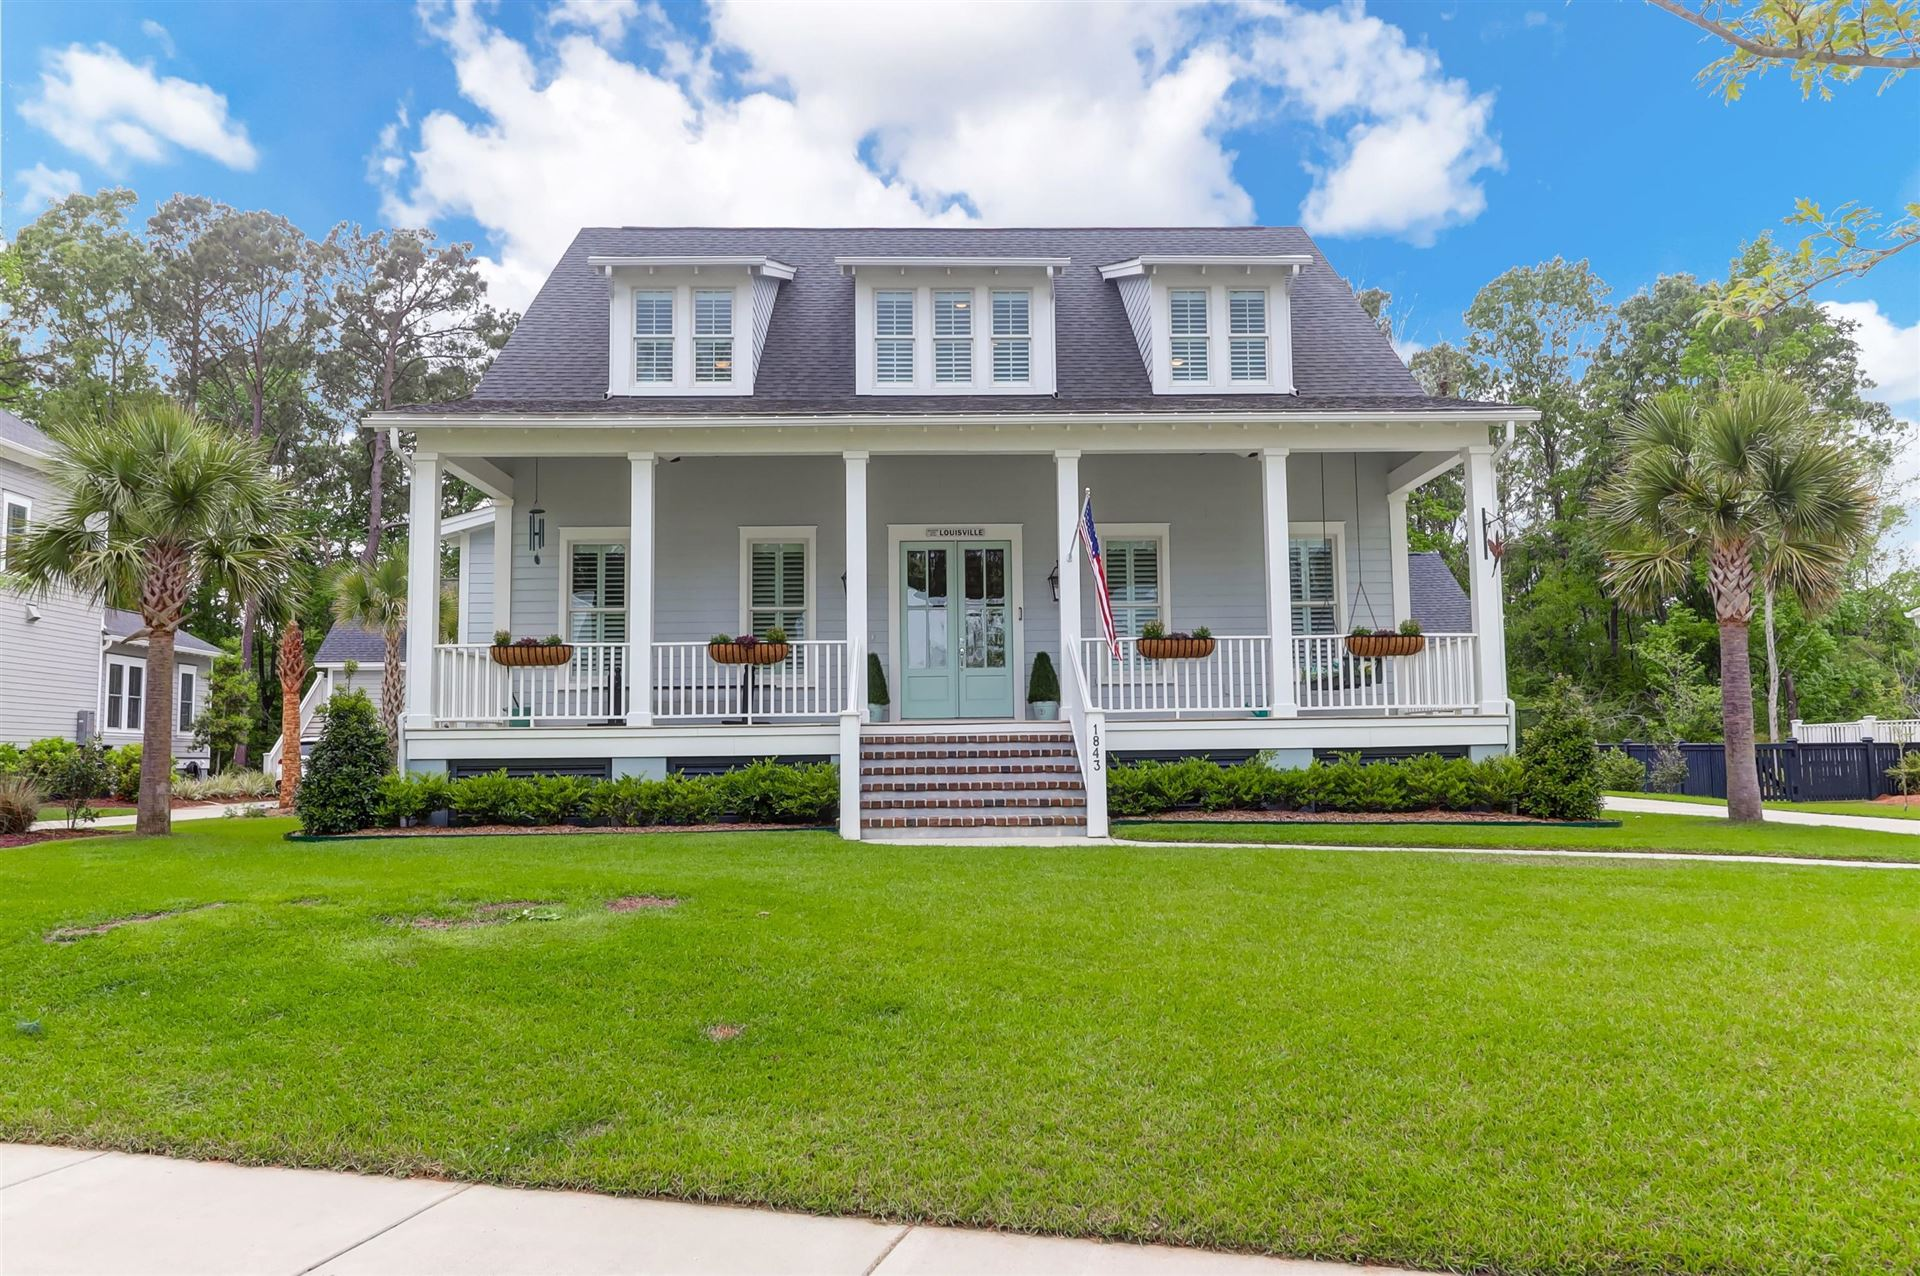 Photo of 1843 Carolina Park Boulevard, Mount Pleasant, SC 29466 (MLS # 21010257)